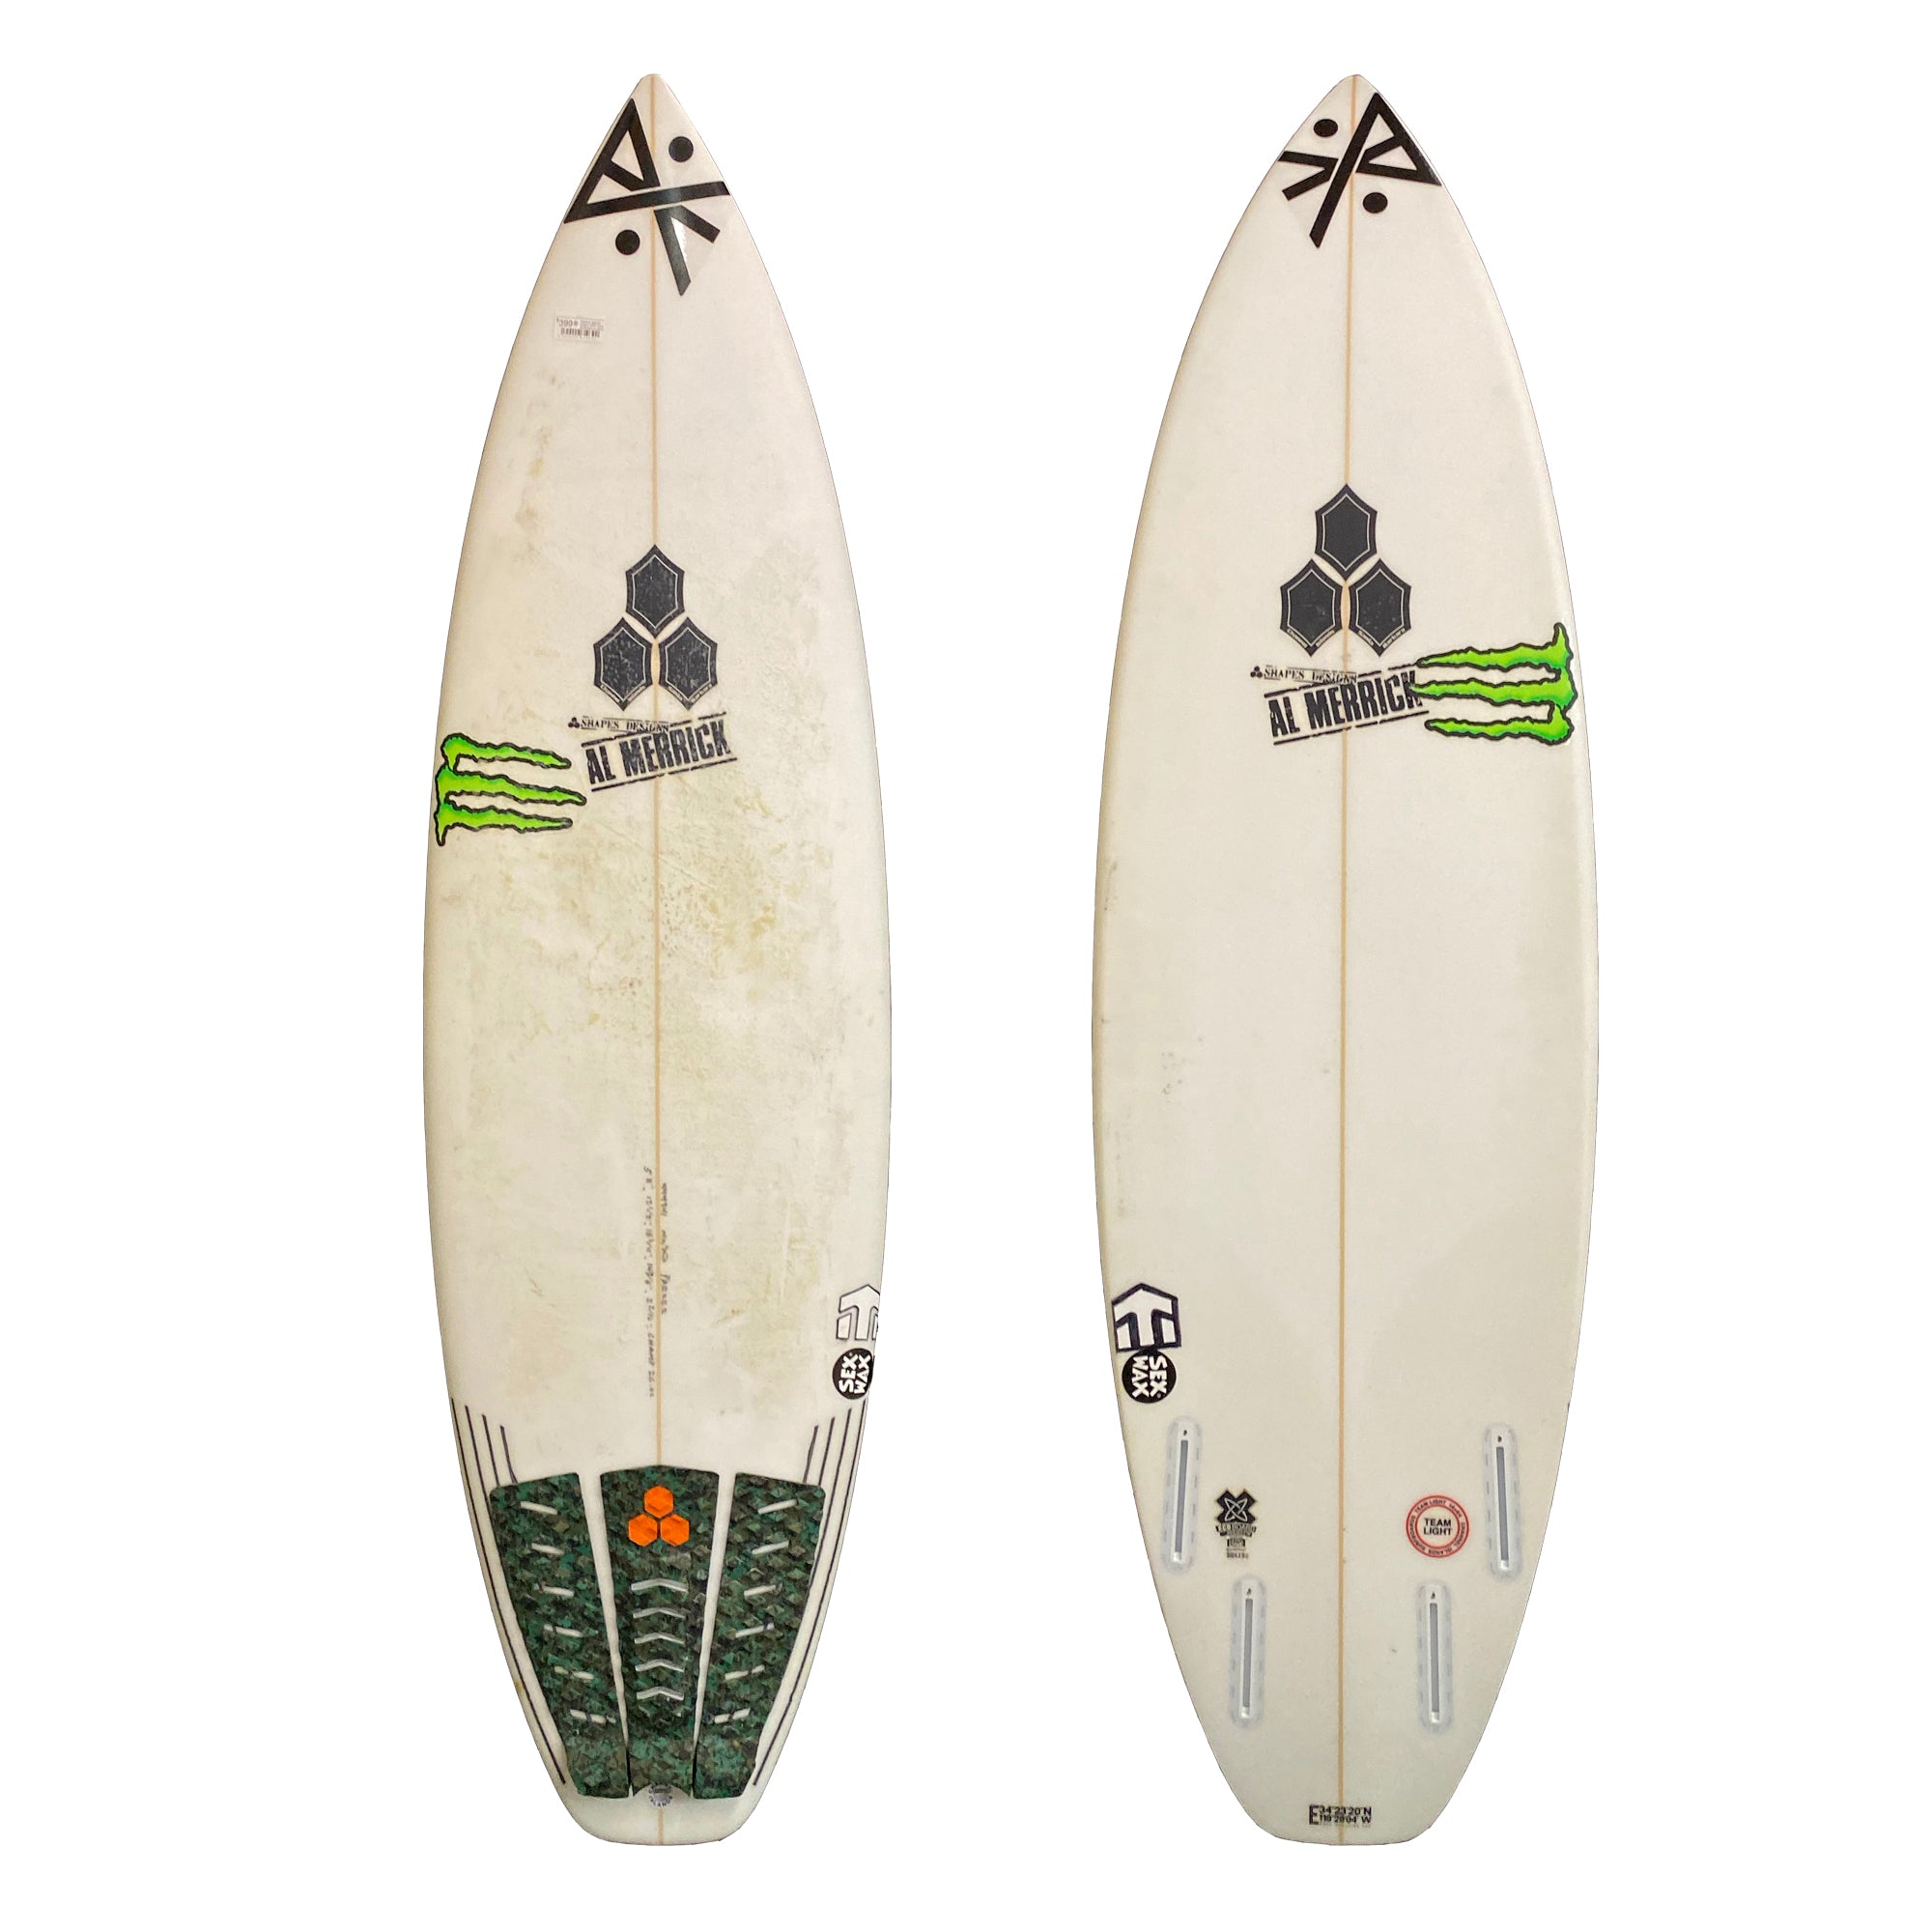 Channel Islands Champ 5'8 Used Surfboard